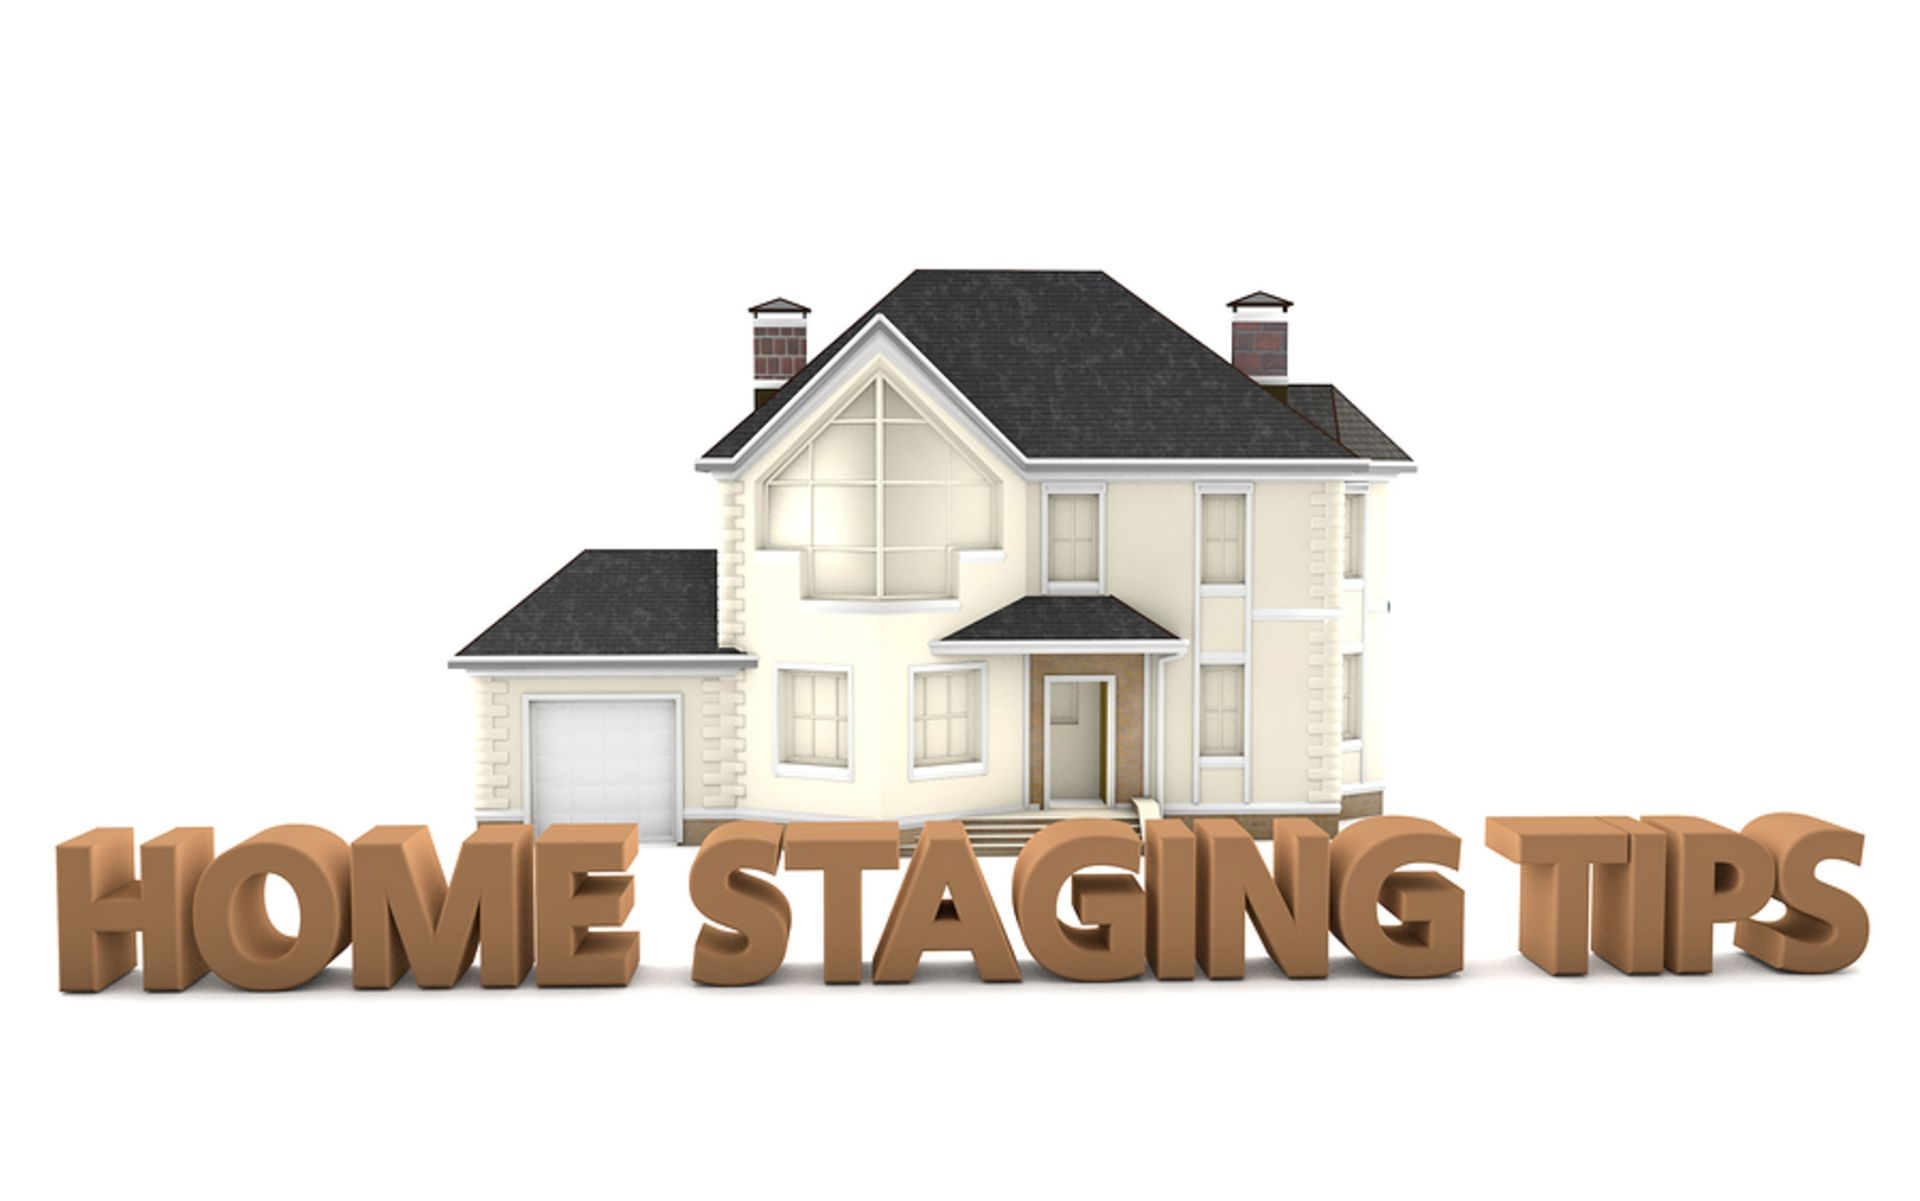 Basic Staging Makes Your Home's First Impression